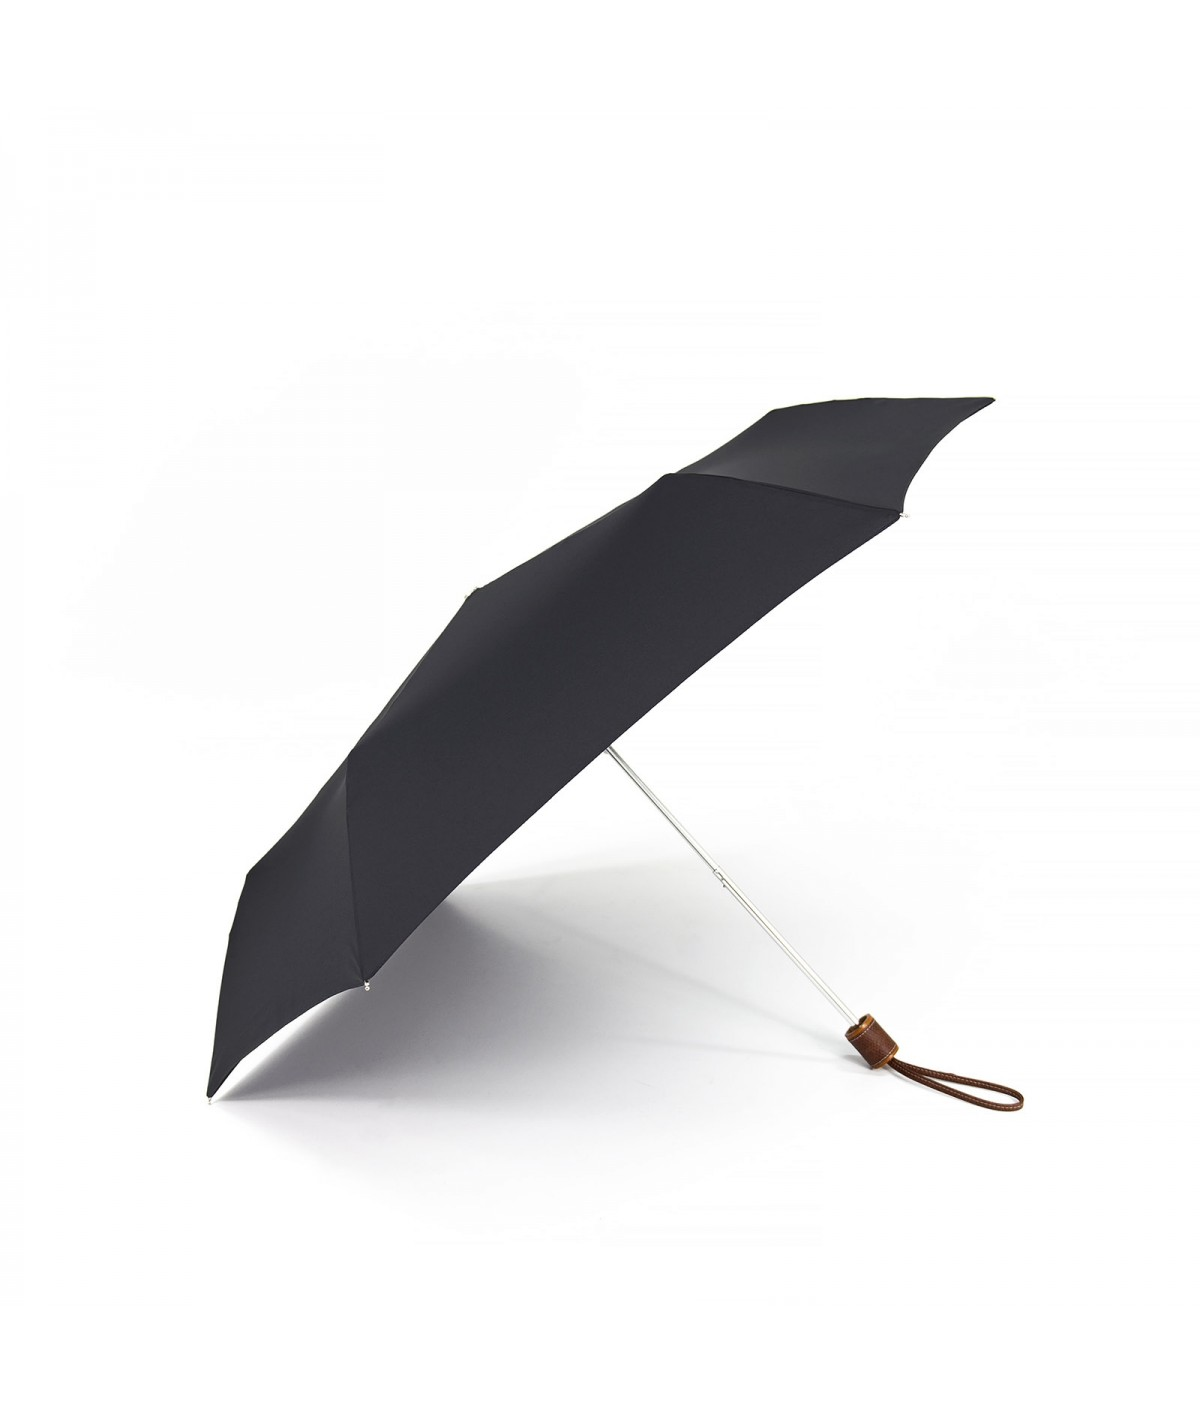 """→ Longchamp - """"Micro Folding"""" Umbrella - Rifle in Exclusivity by the French Umbrellas Manufacturer Maison Pierre Vaux"""